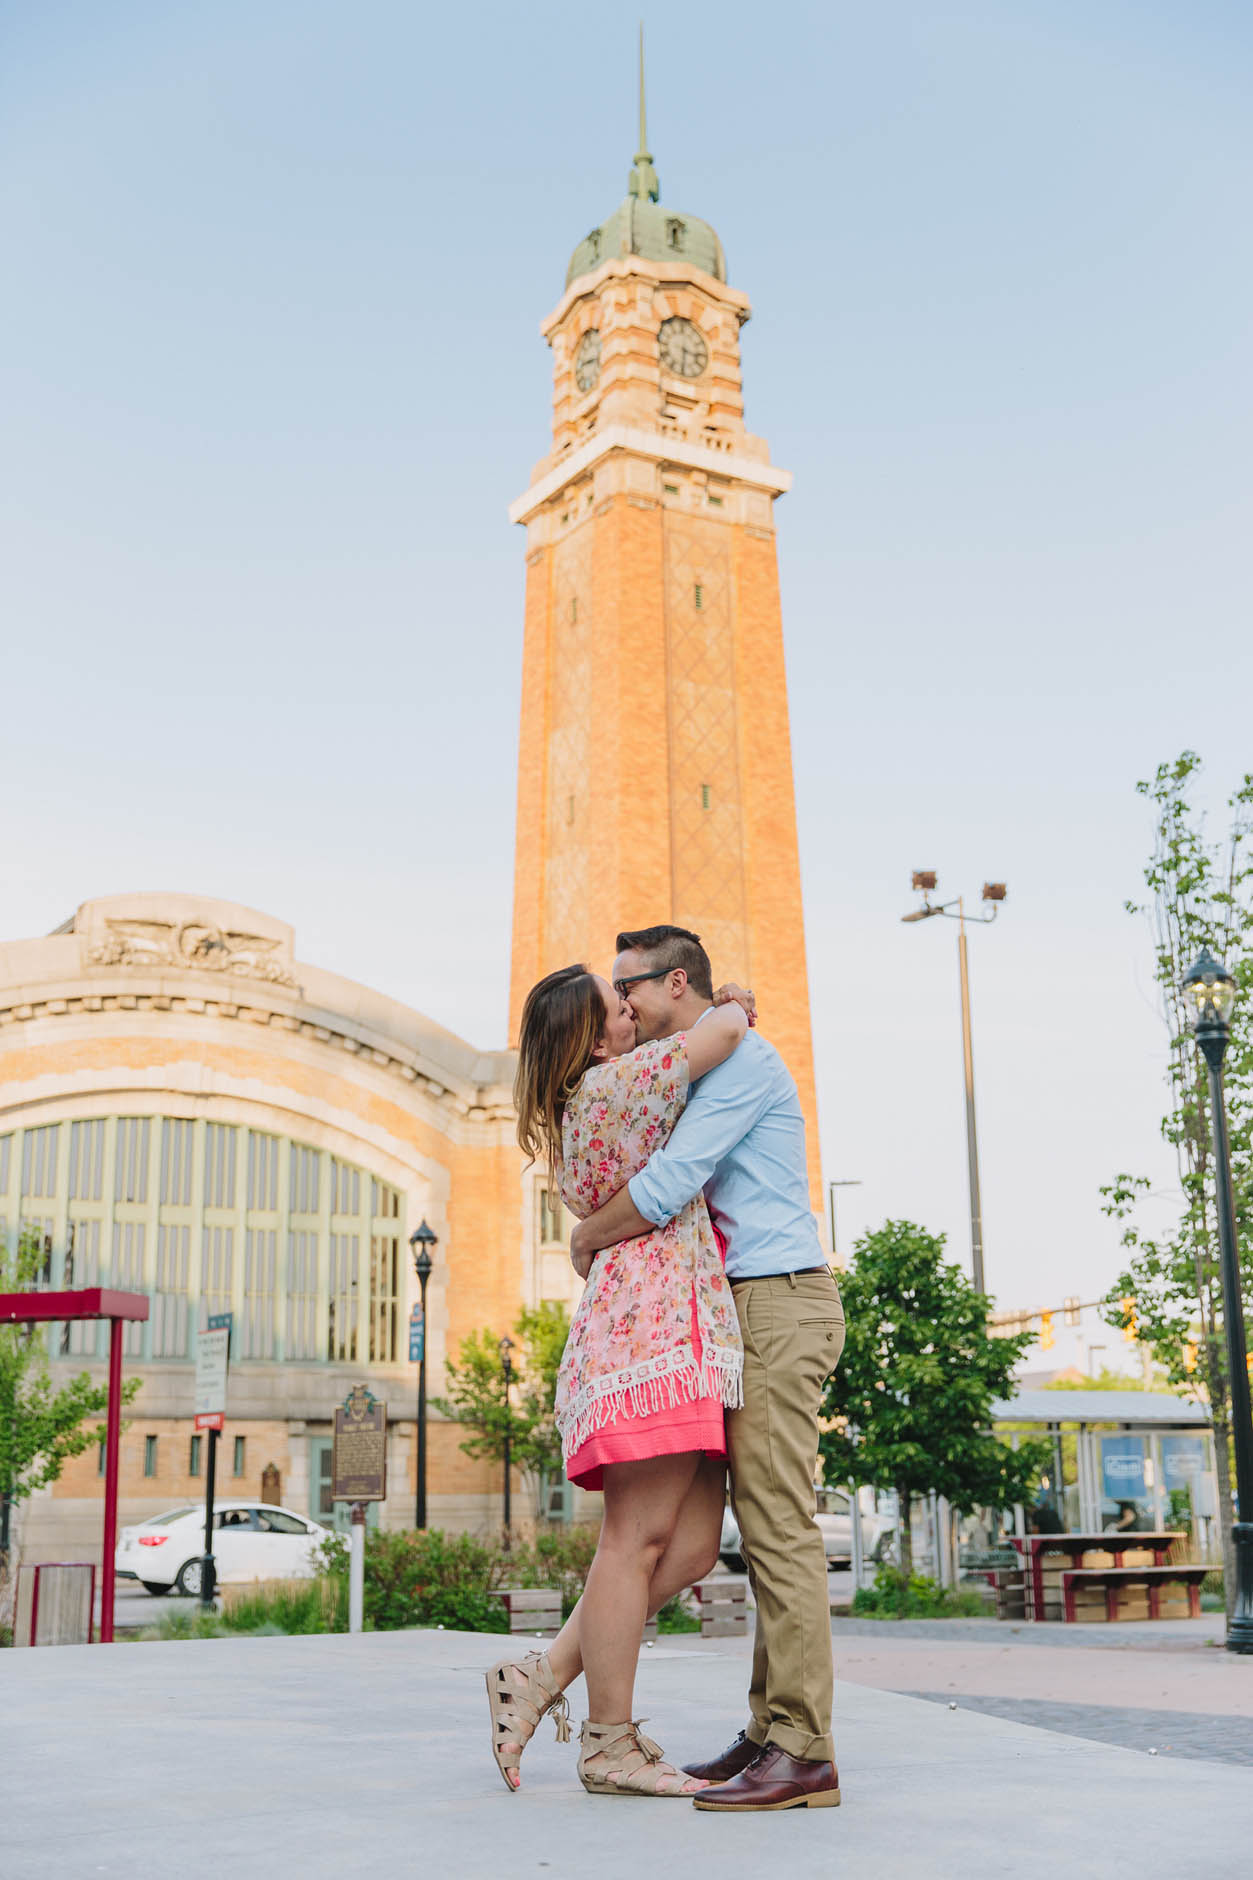 A spring engagement session in Cleveland with Rob & Denise. All photos created by Maria Sharp Photography. To view more please visit, http://www.mariacsharp.com/